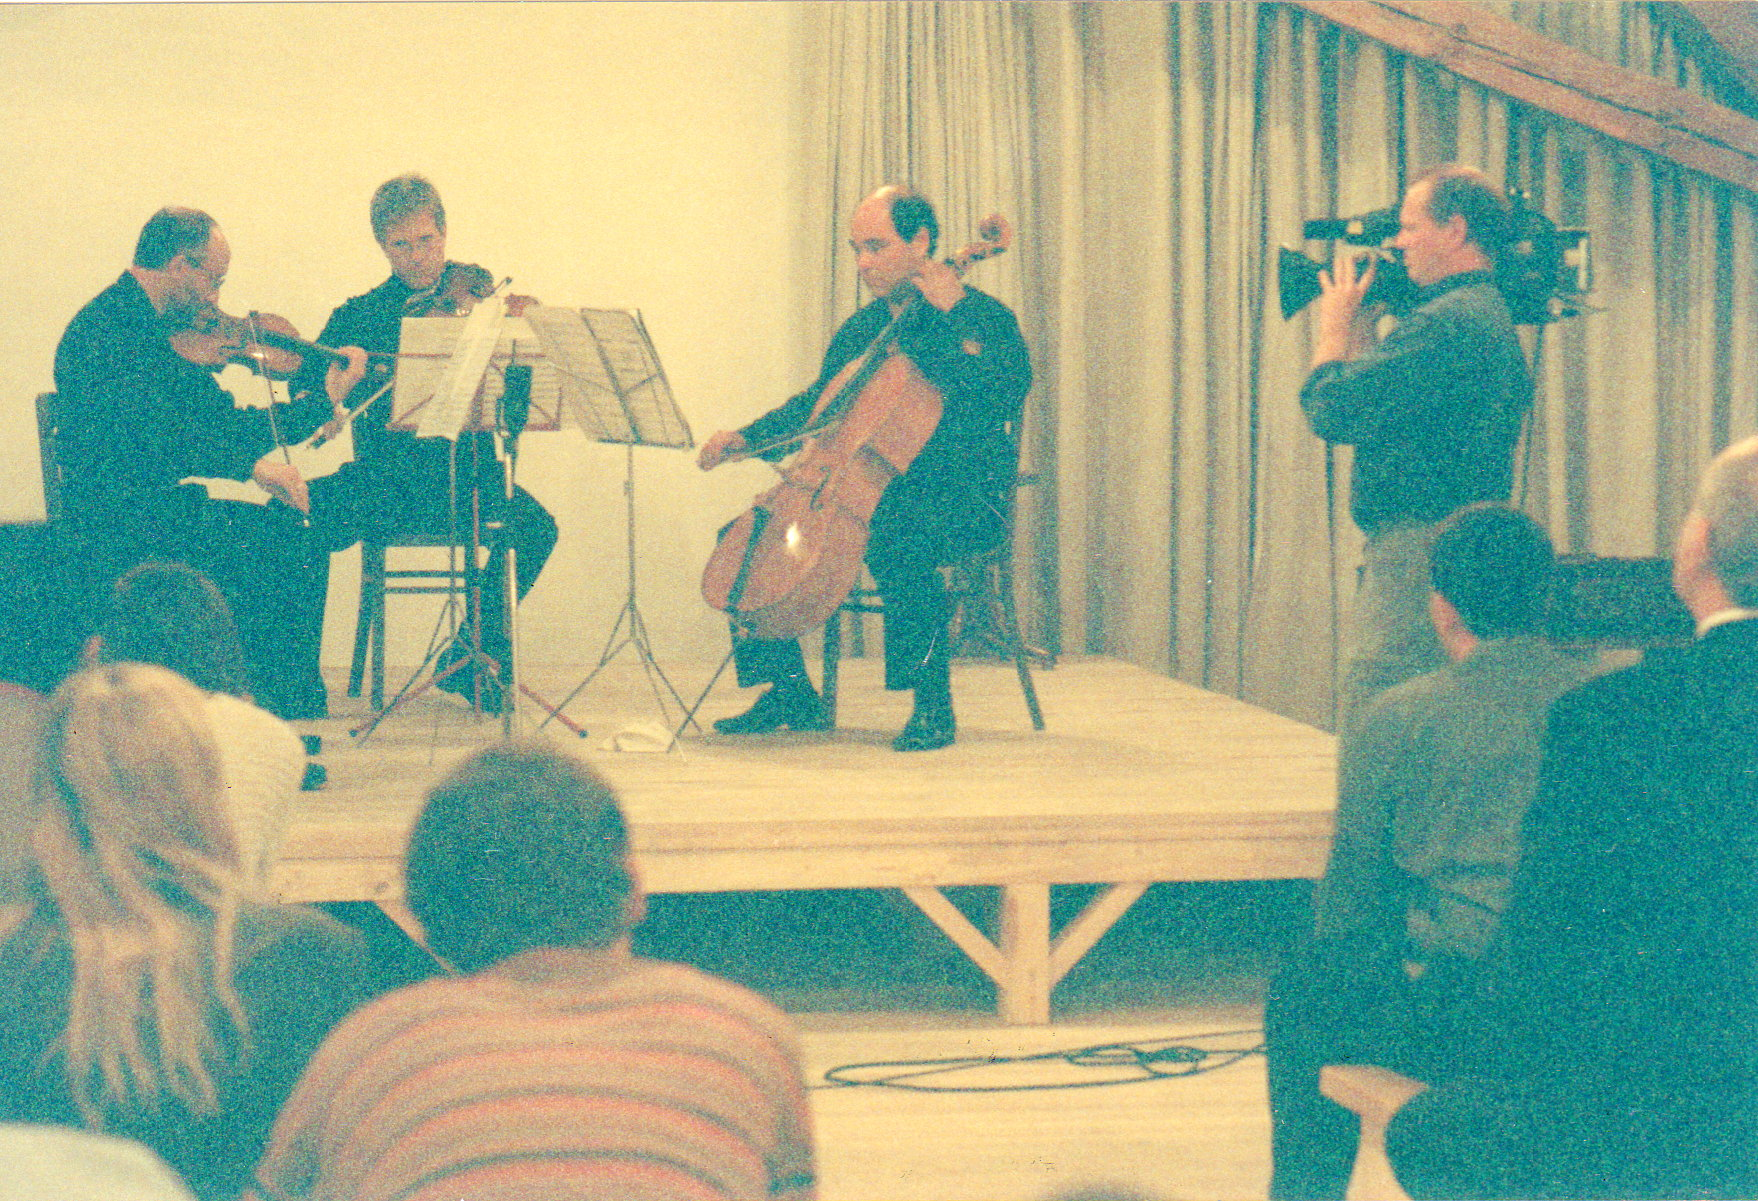 BSO musicians, Attic Theater, Theresienstadt